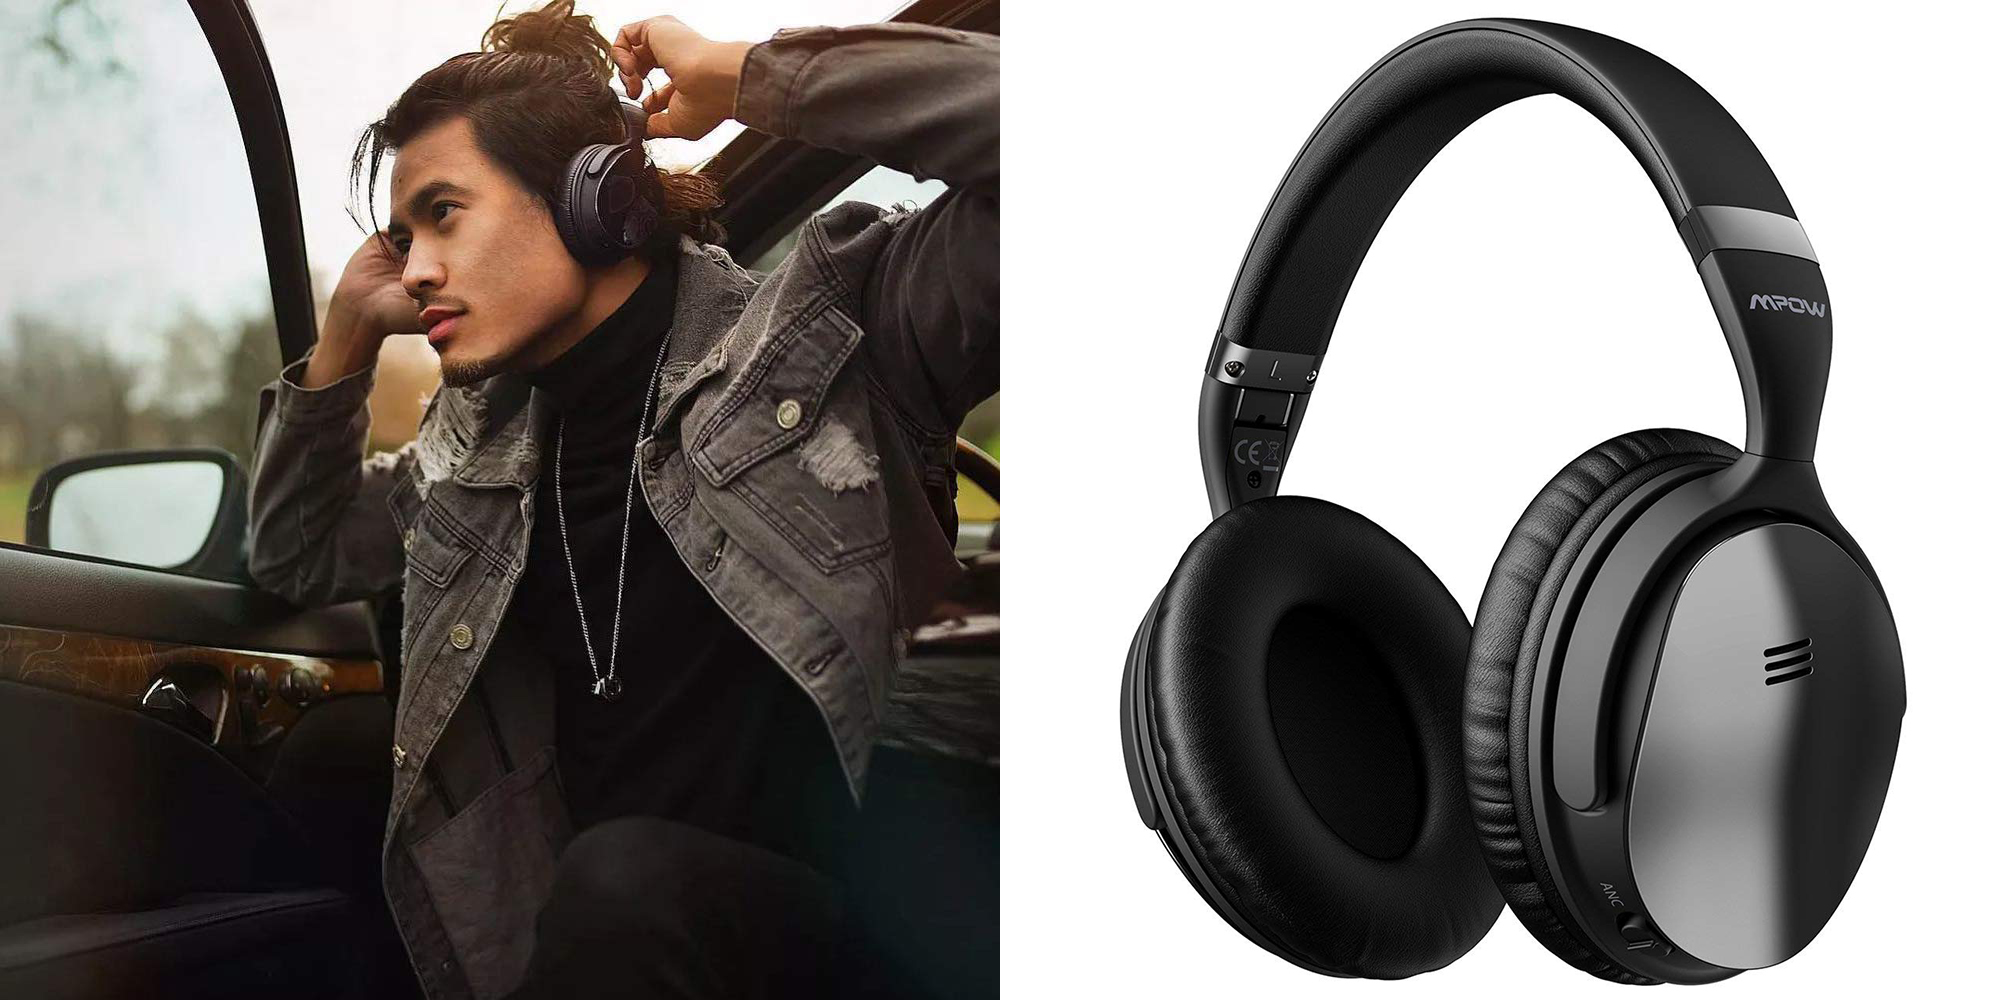 Mpow's latest ANC Wireless Headphones drop to new low at $40 (Reg. $60)